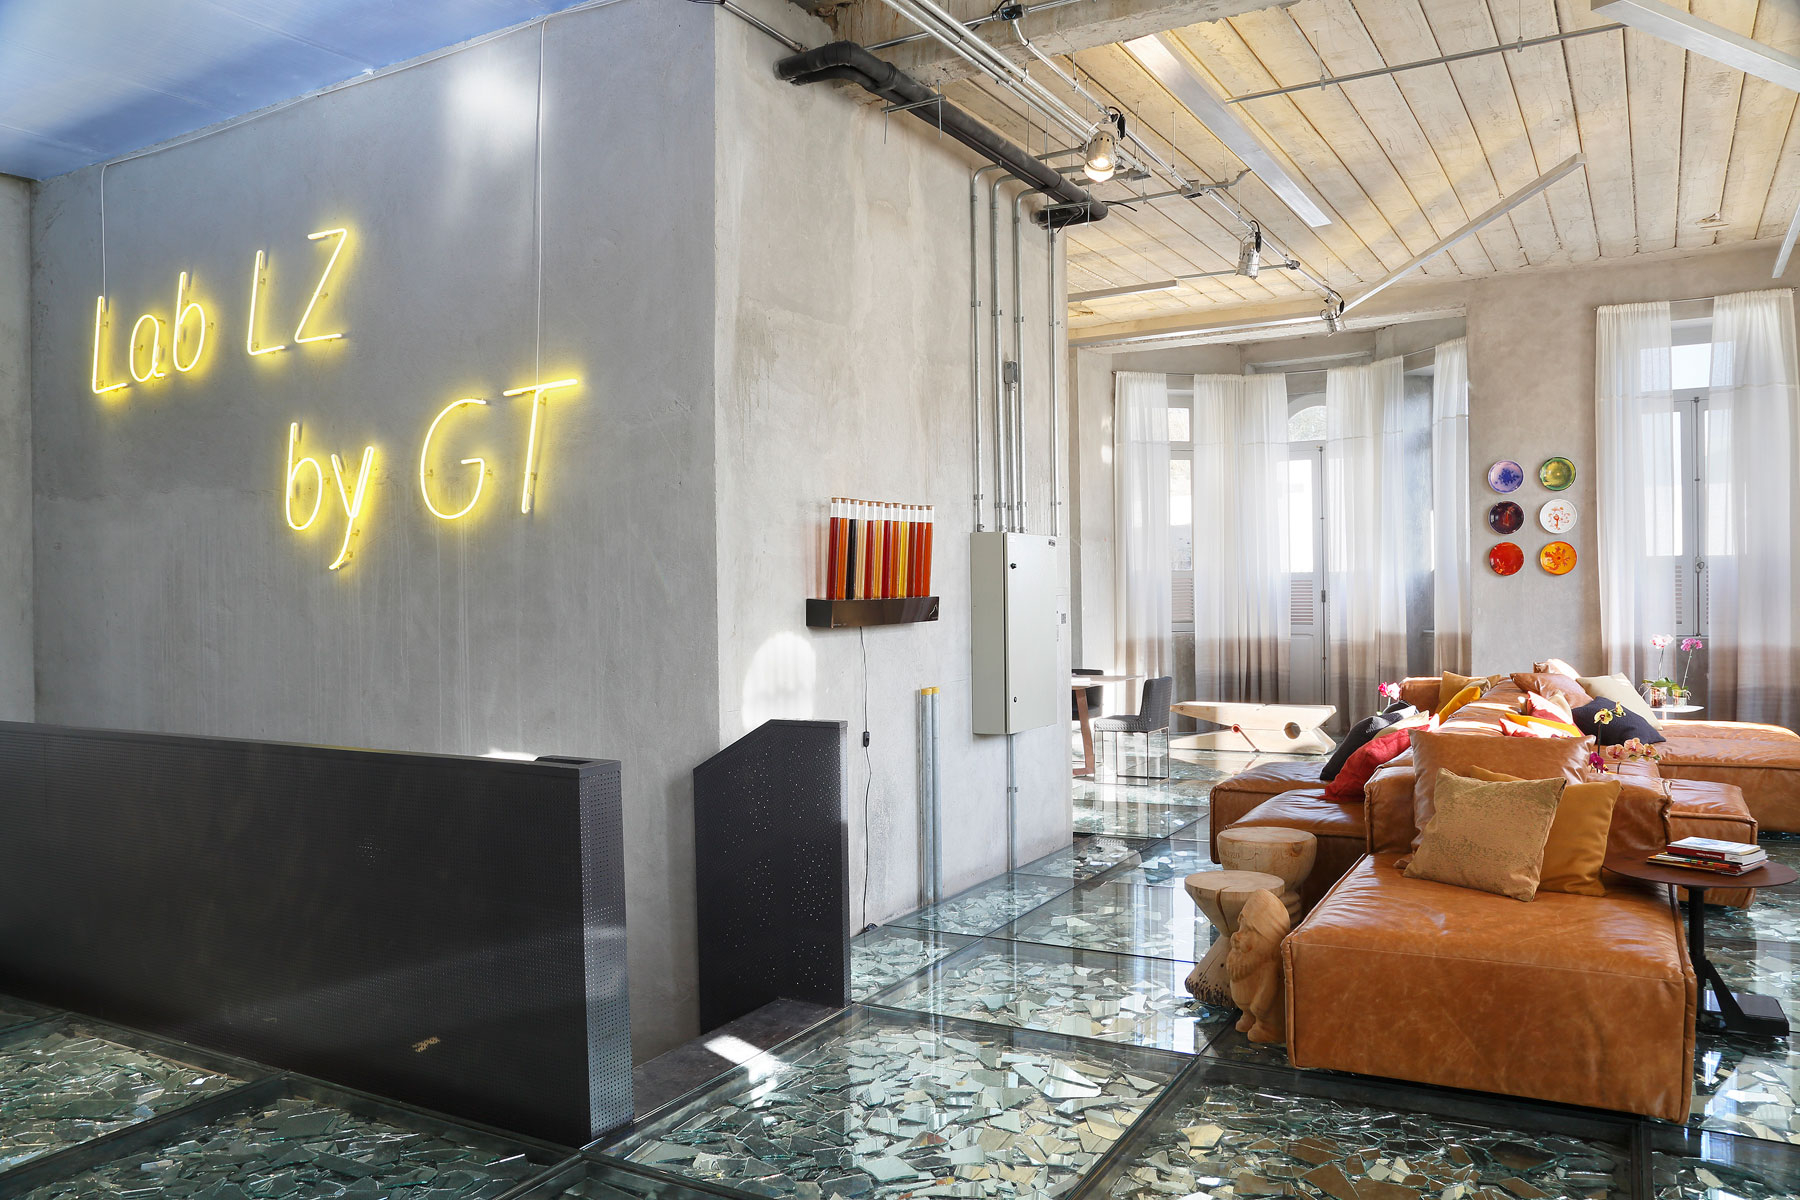 Stylish and Eclectic Design with Broken Glass Floor of Lab LZ for Casa Cor Rio 2015 by Giselle Taranto Architecture-01